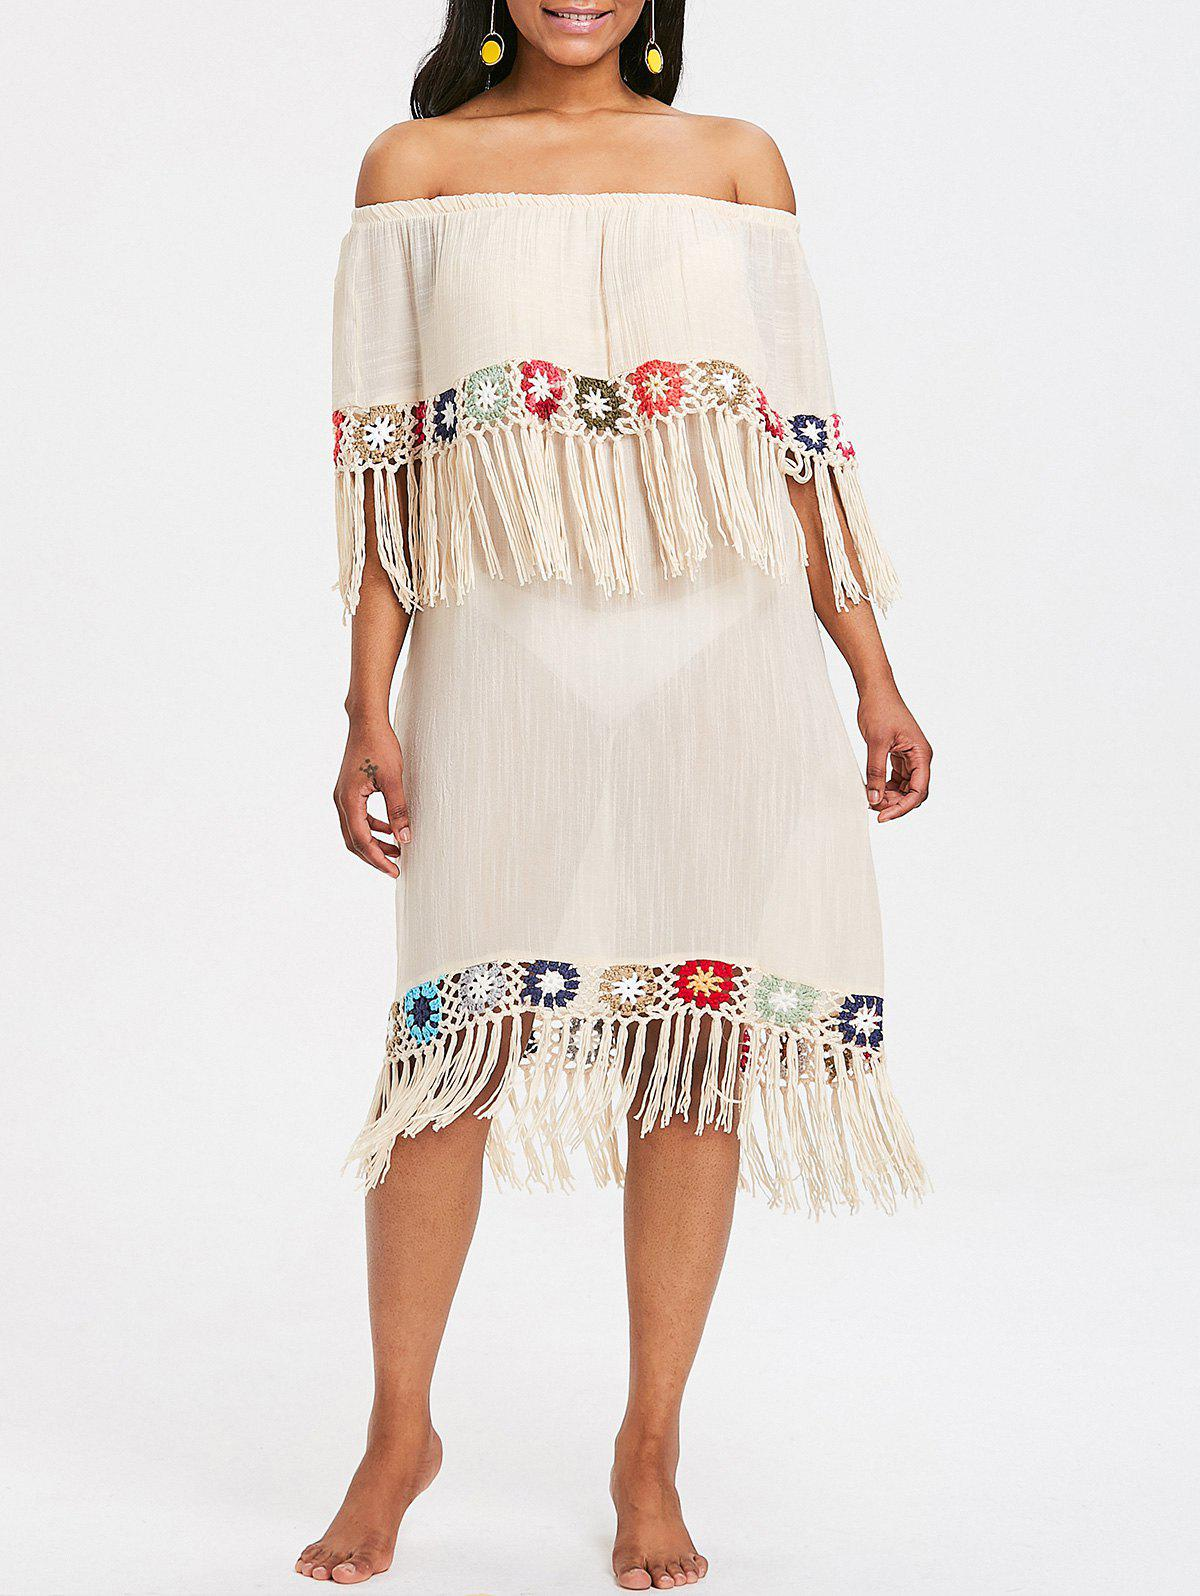 Fringed Crochet Panel Beach Cover Up Dress - BEIGE ONE SIZE